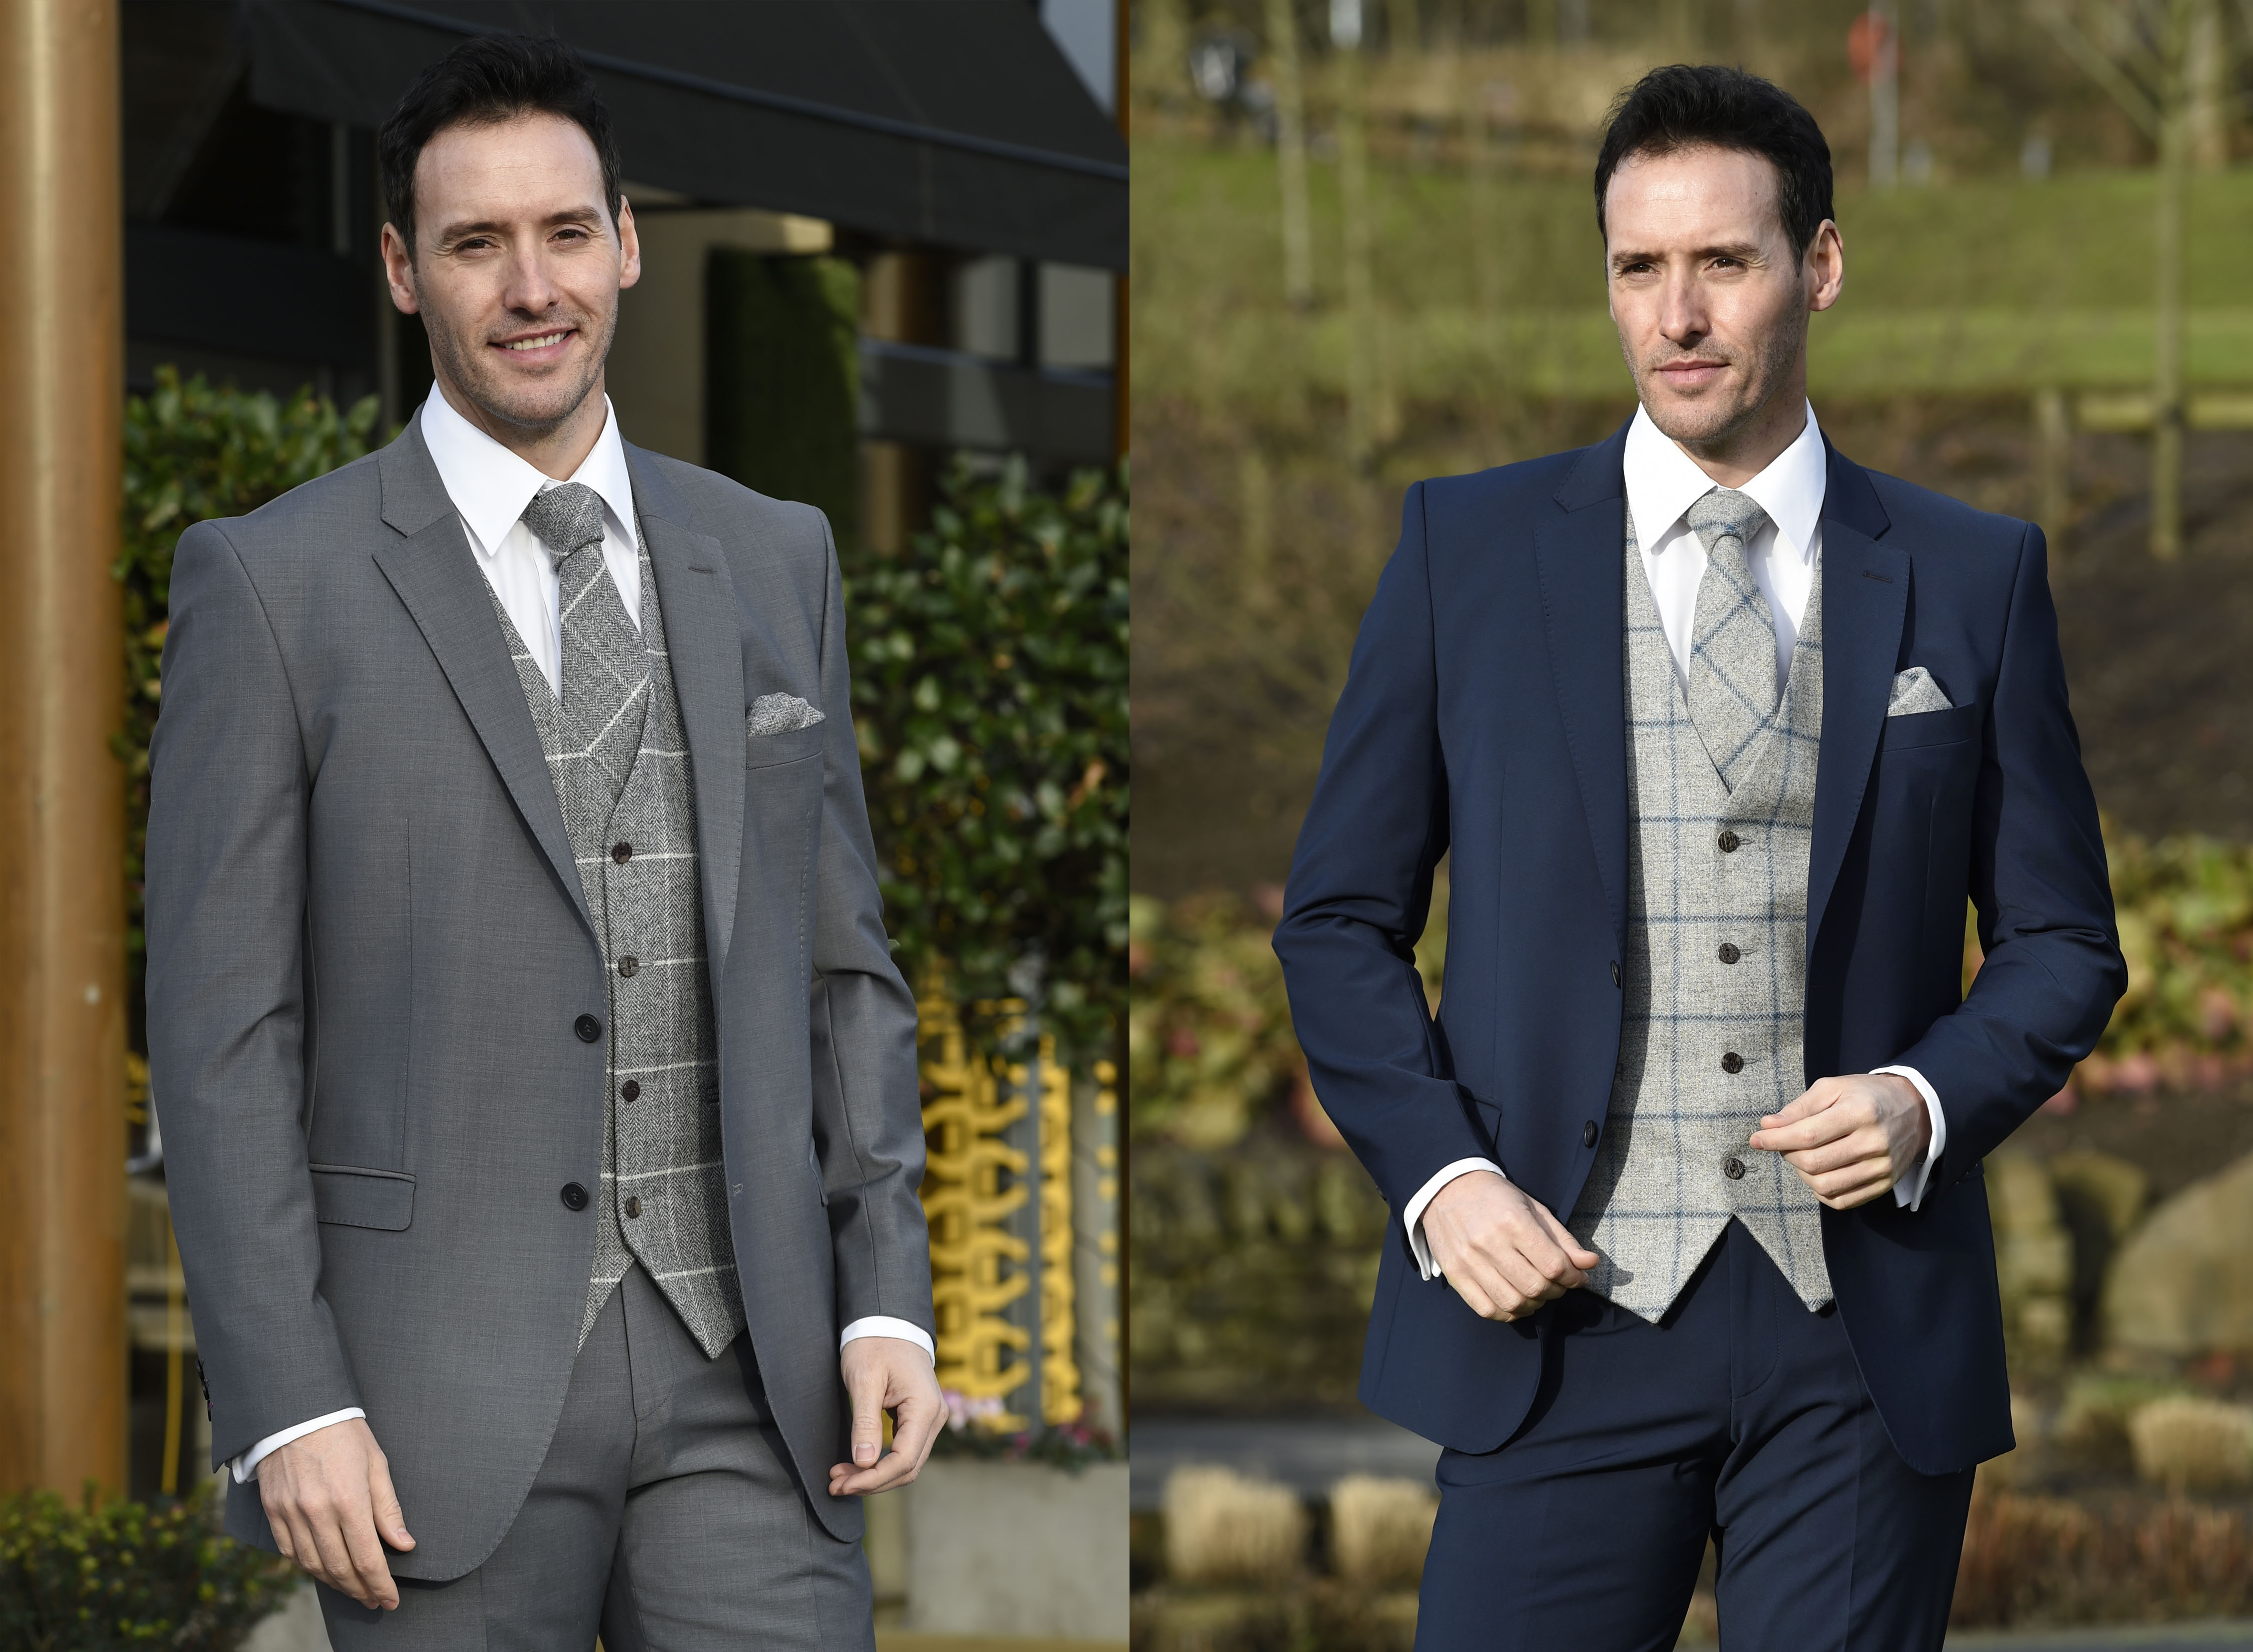 Gents and Boys Formal Suit Hire